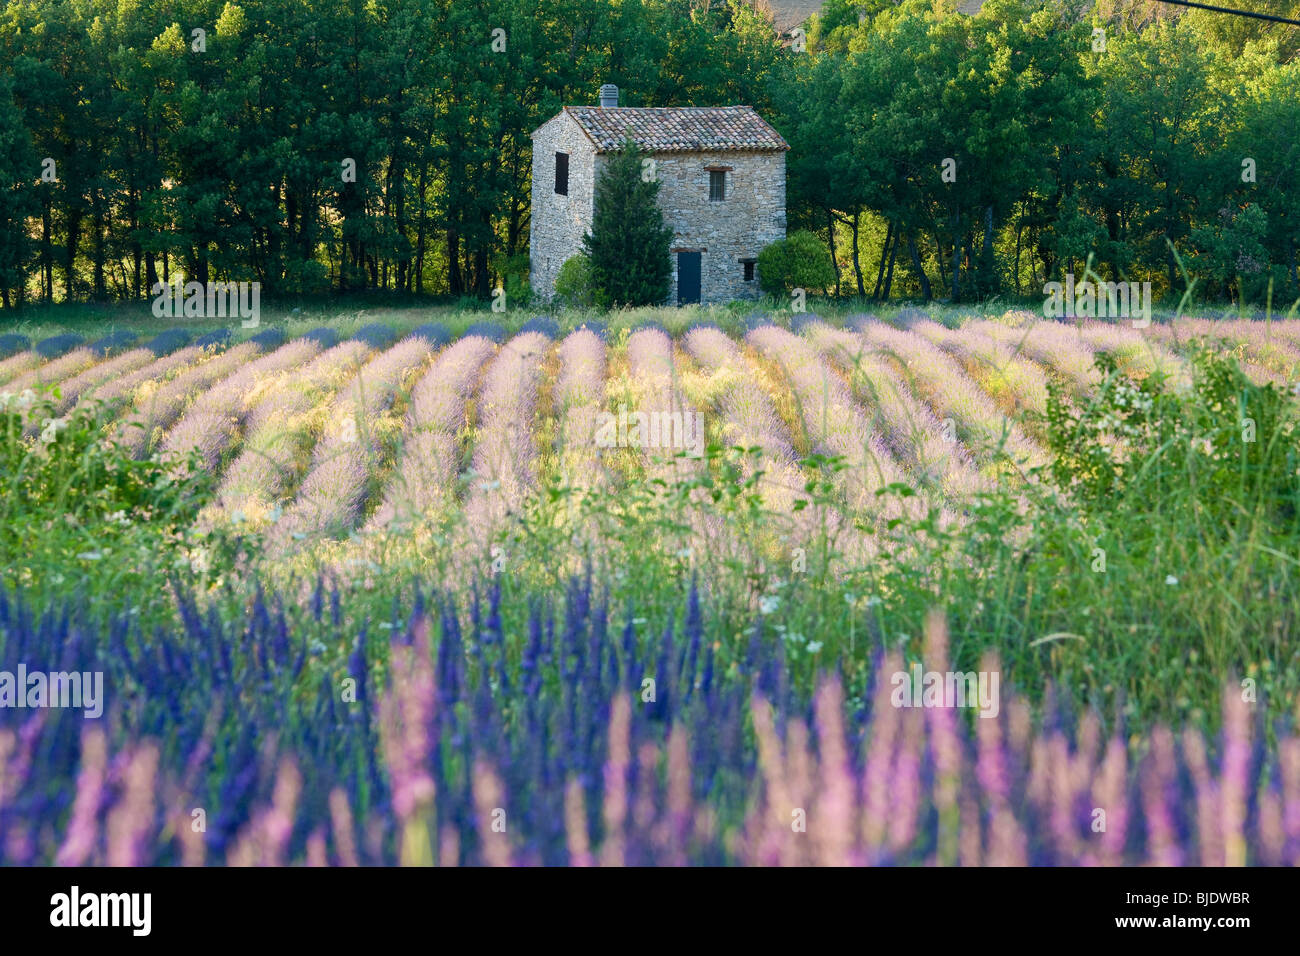 Lavender field, The Luberon, Provence, France - Stock Image